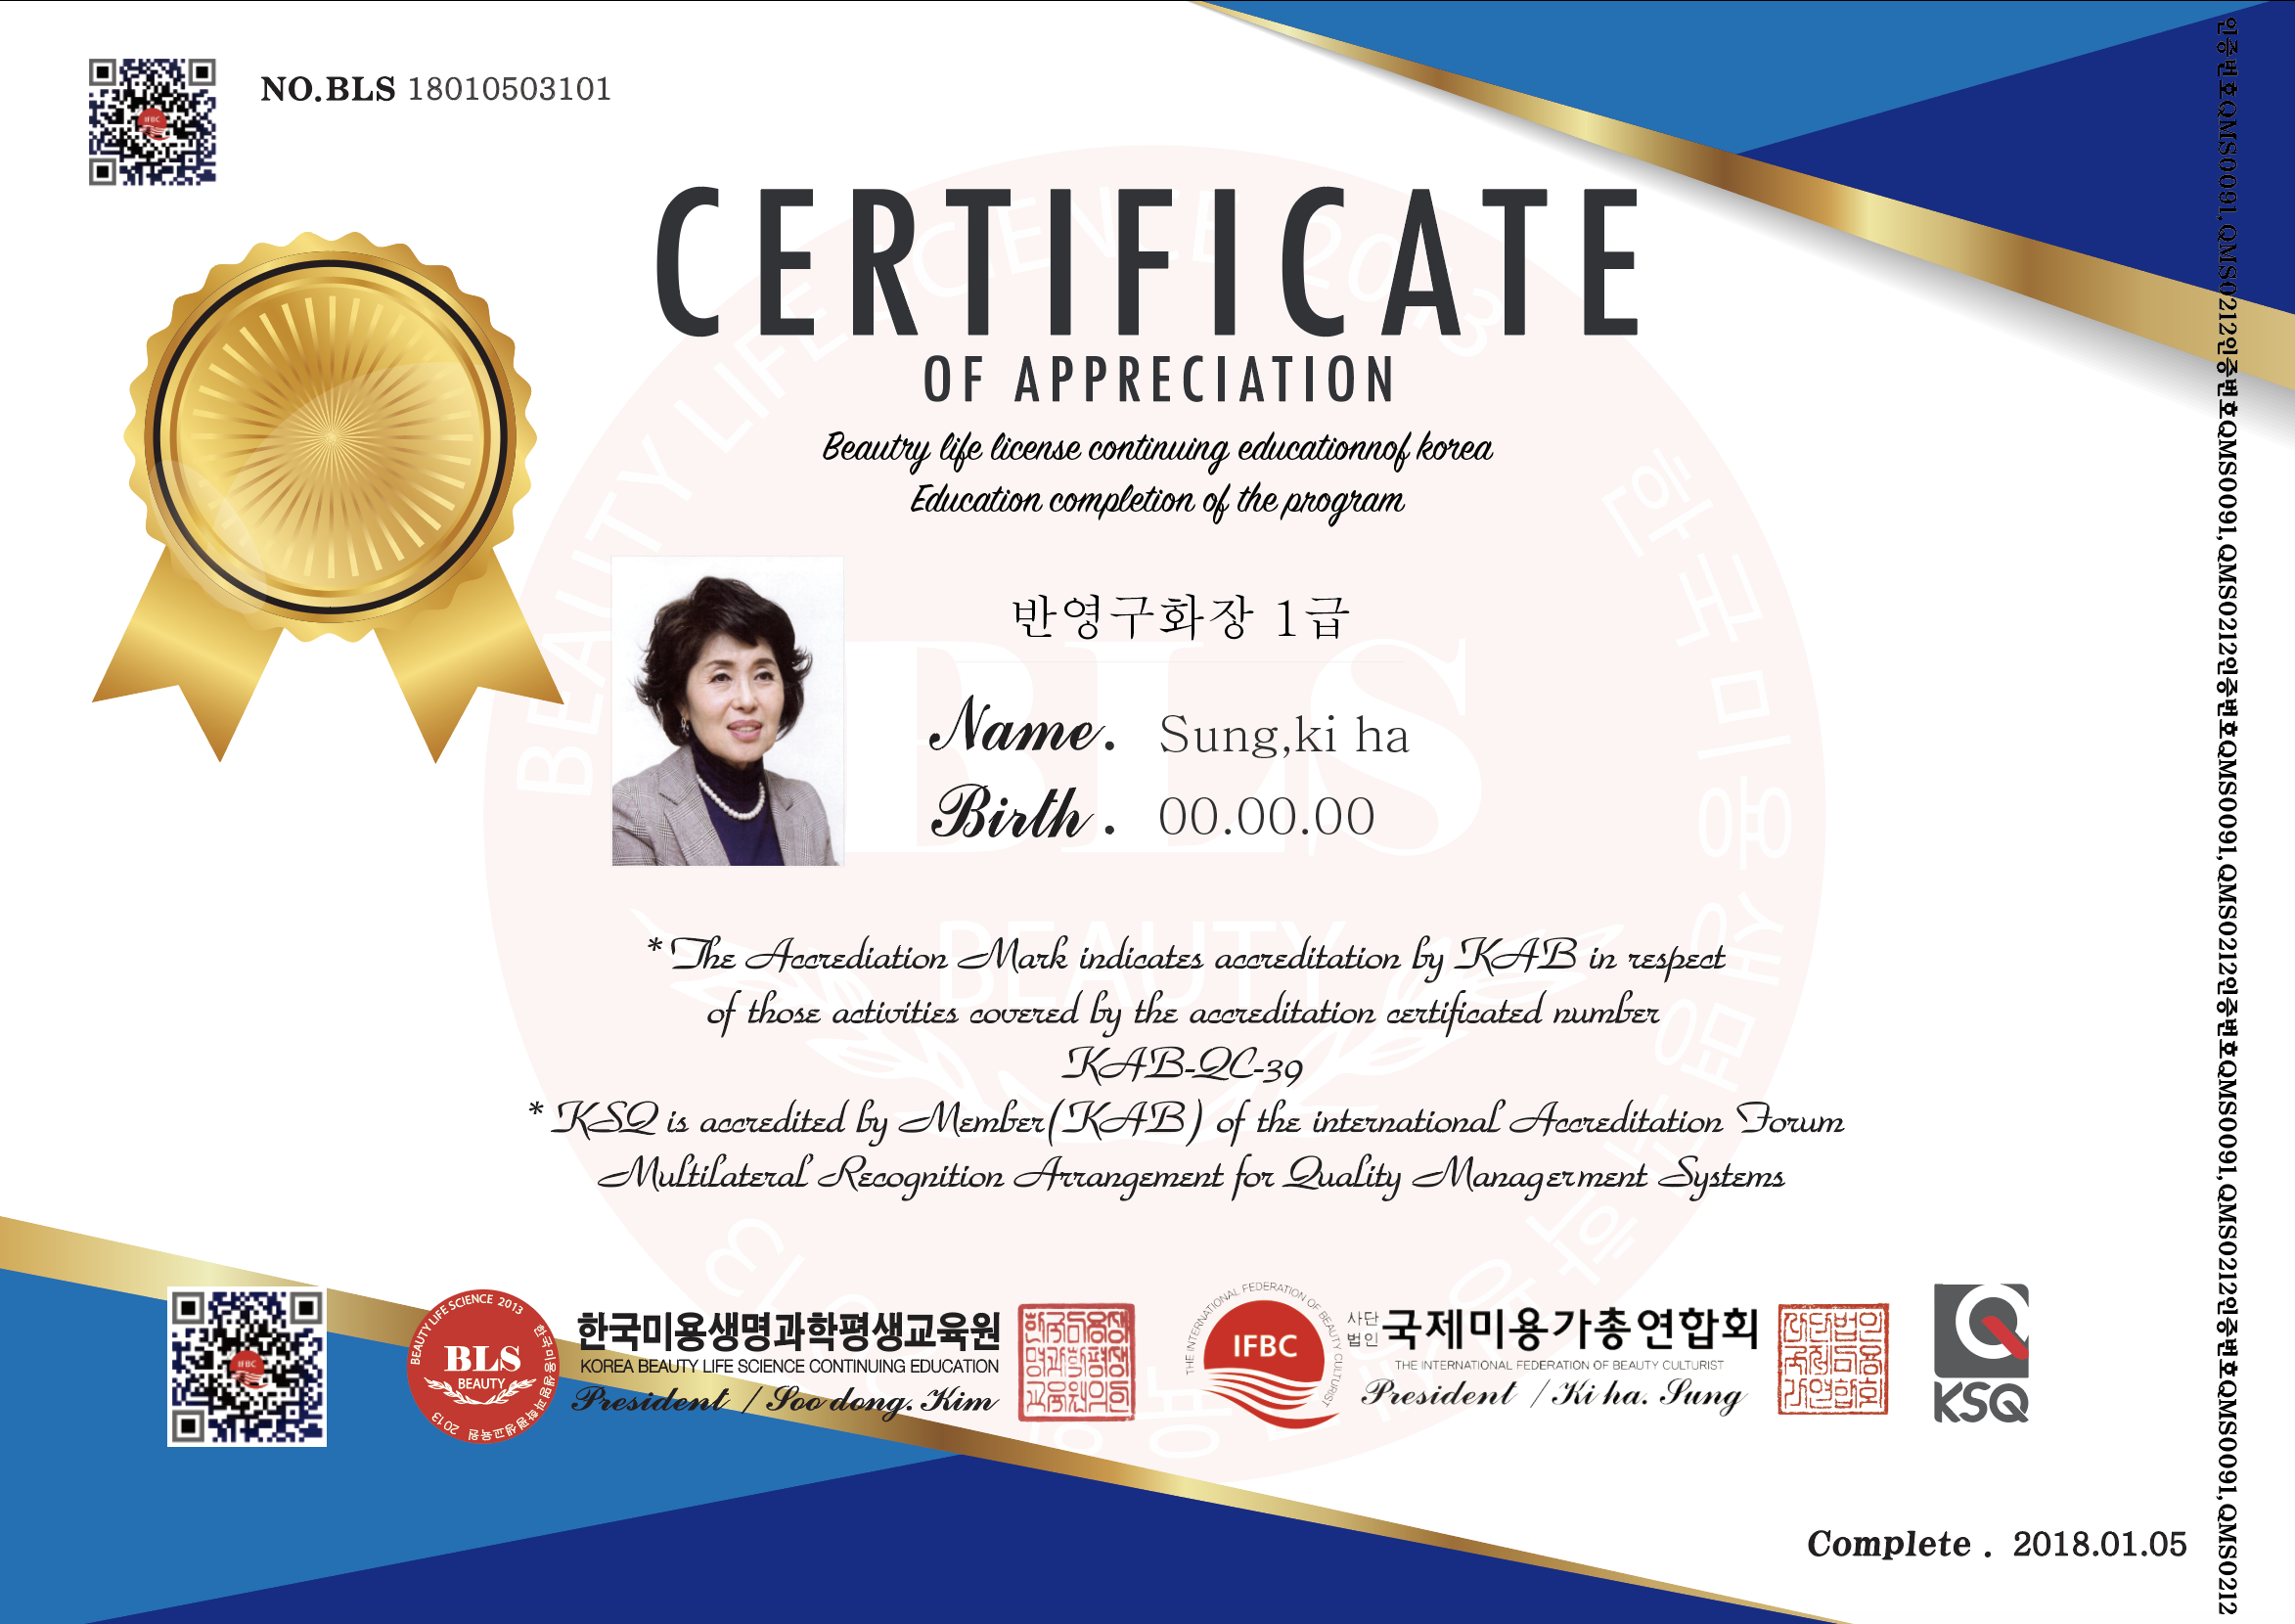 Korea IFBC IBEAC 2018 Int'l Federation of Beauty Culturist Certificate